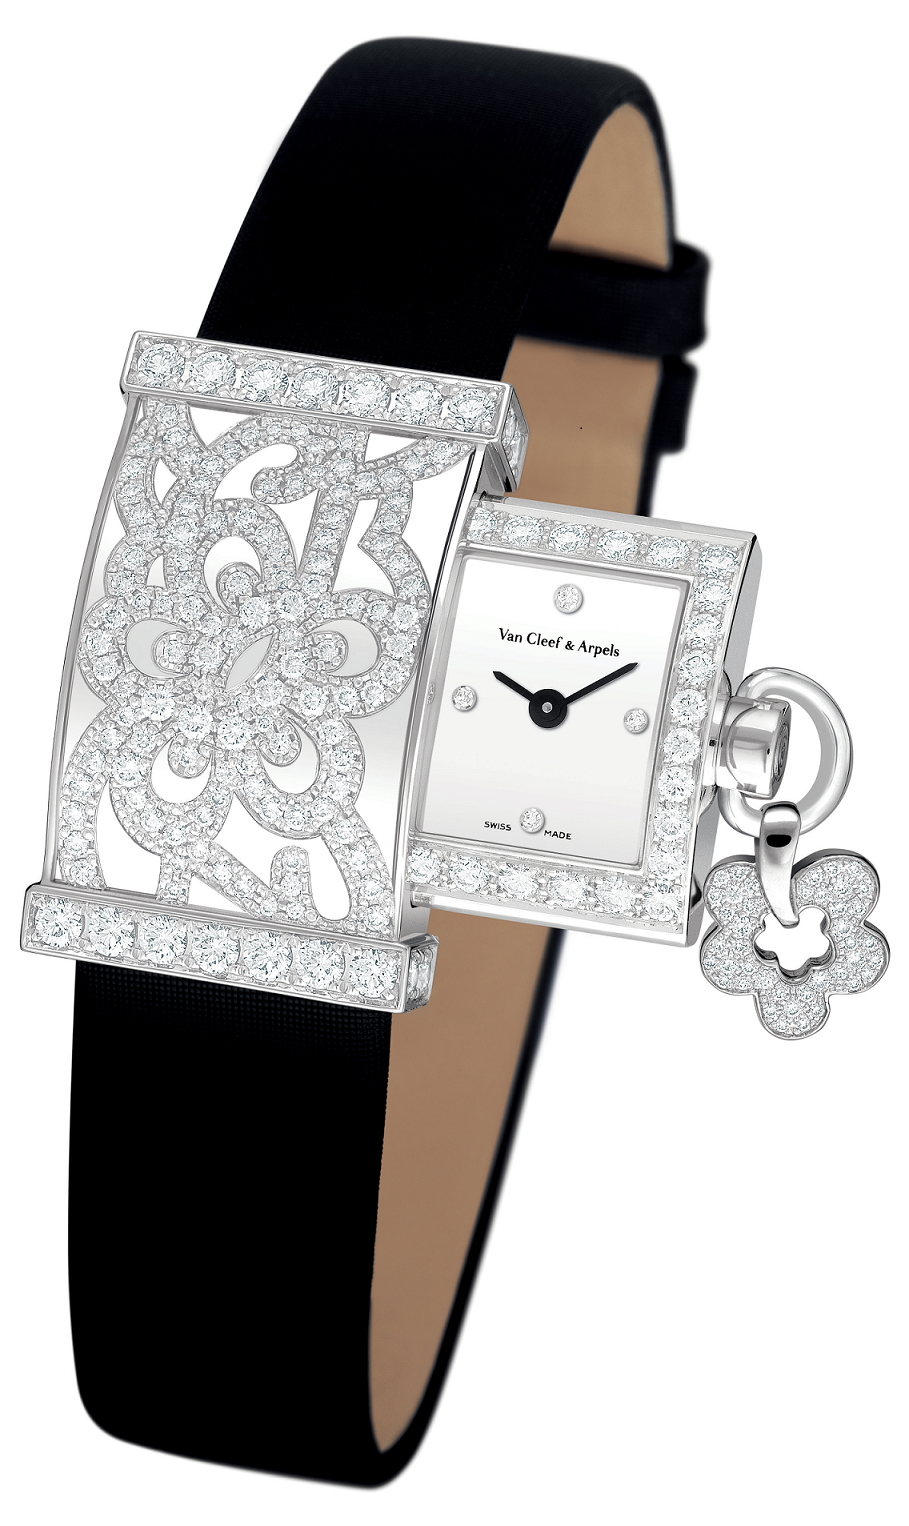 BEST WOMEN'S Bling WATCHES 2021 Rectangular Dial with Clear Rhinestones and Sliding Dial with Black Straps